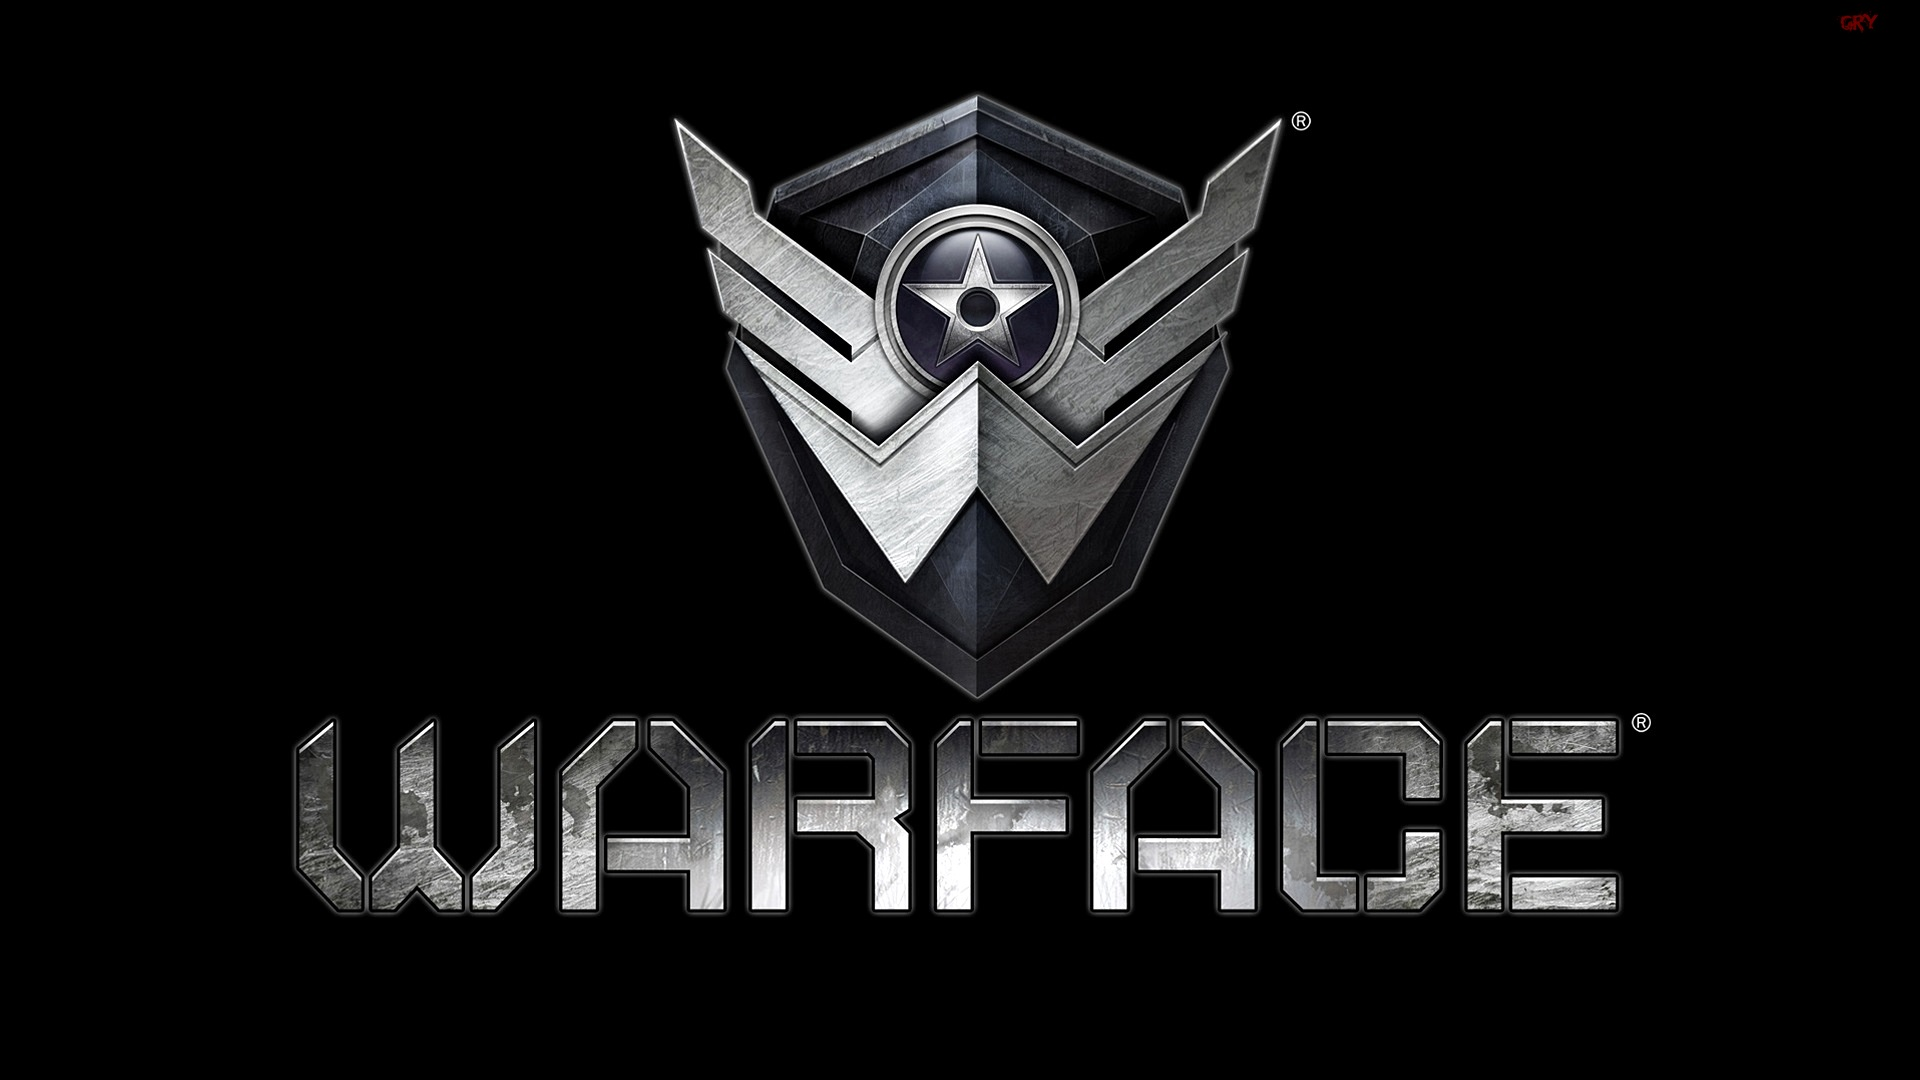 Gra, Warface, Logo